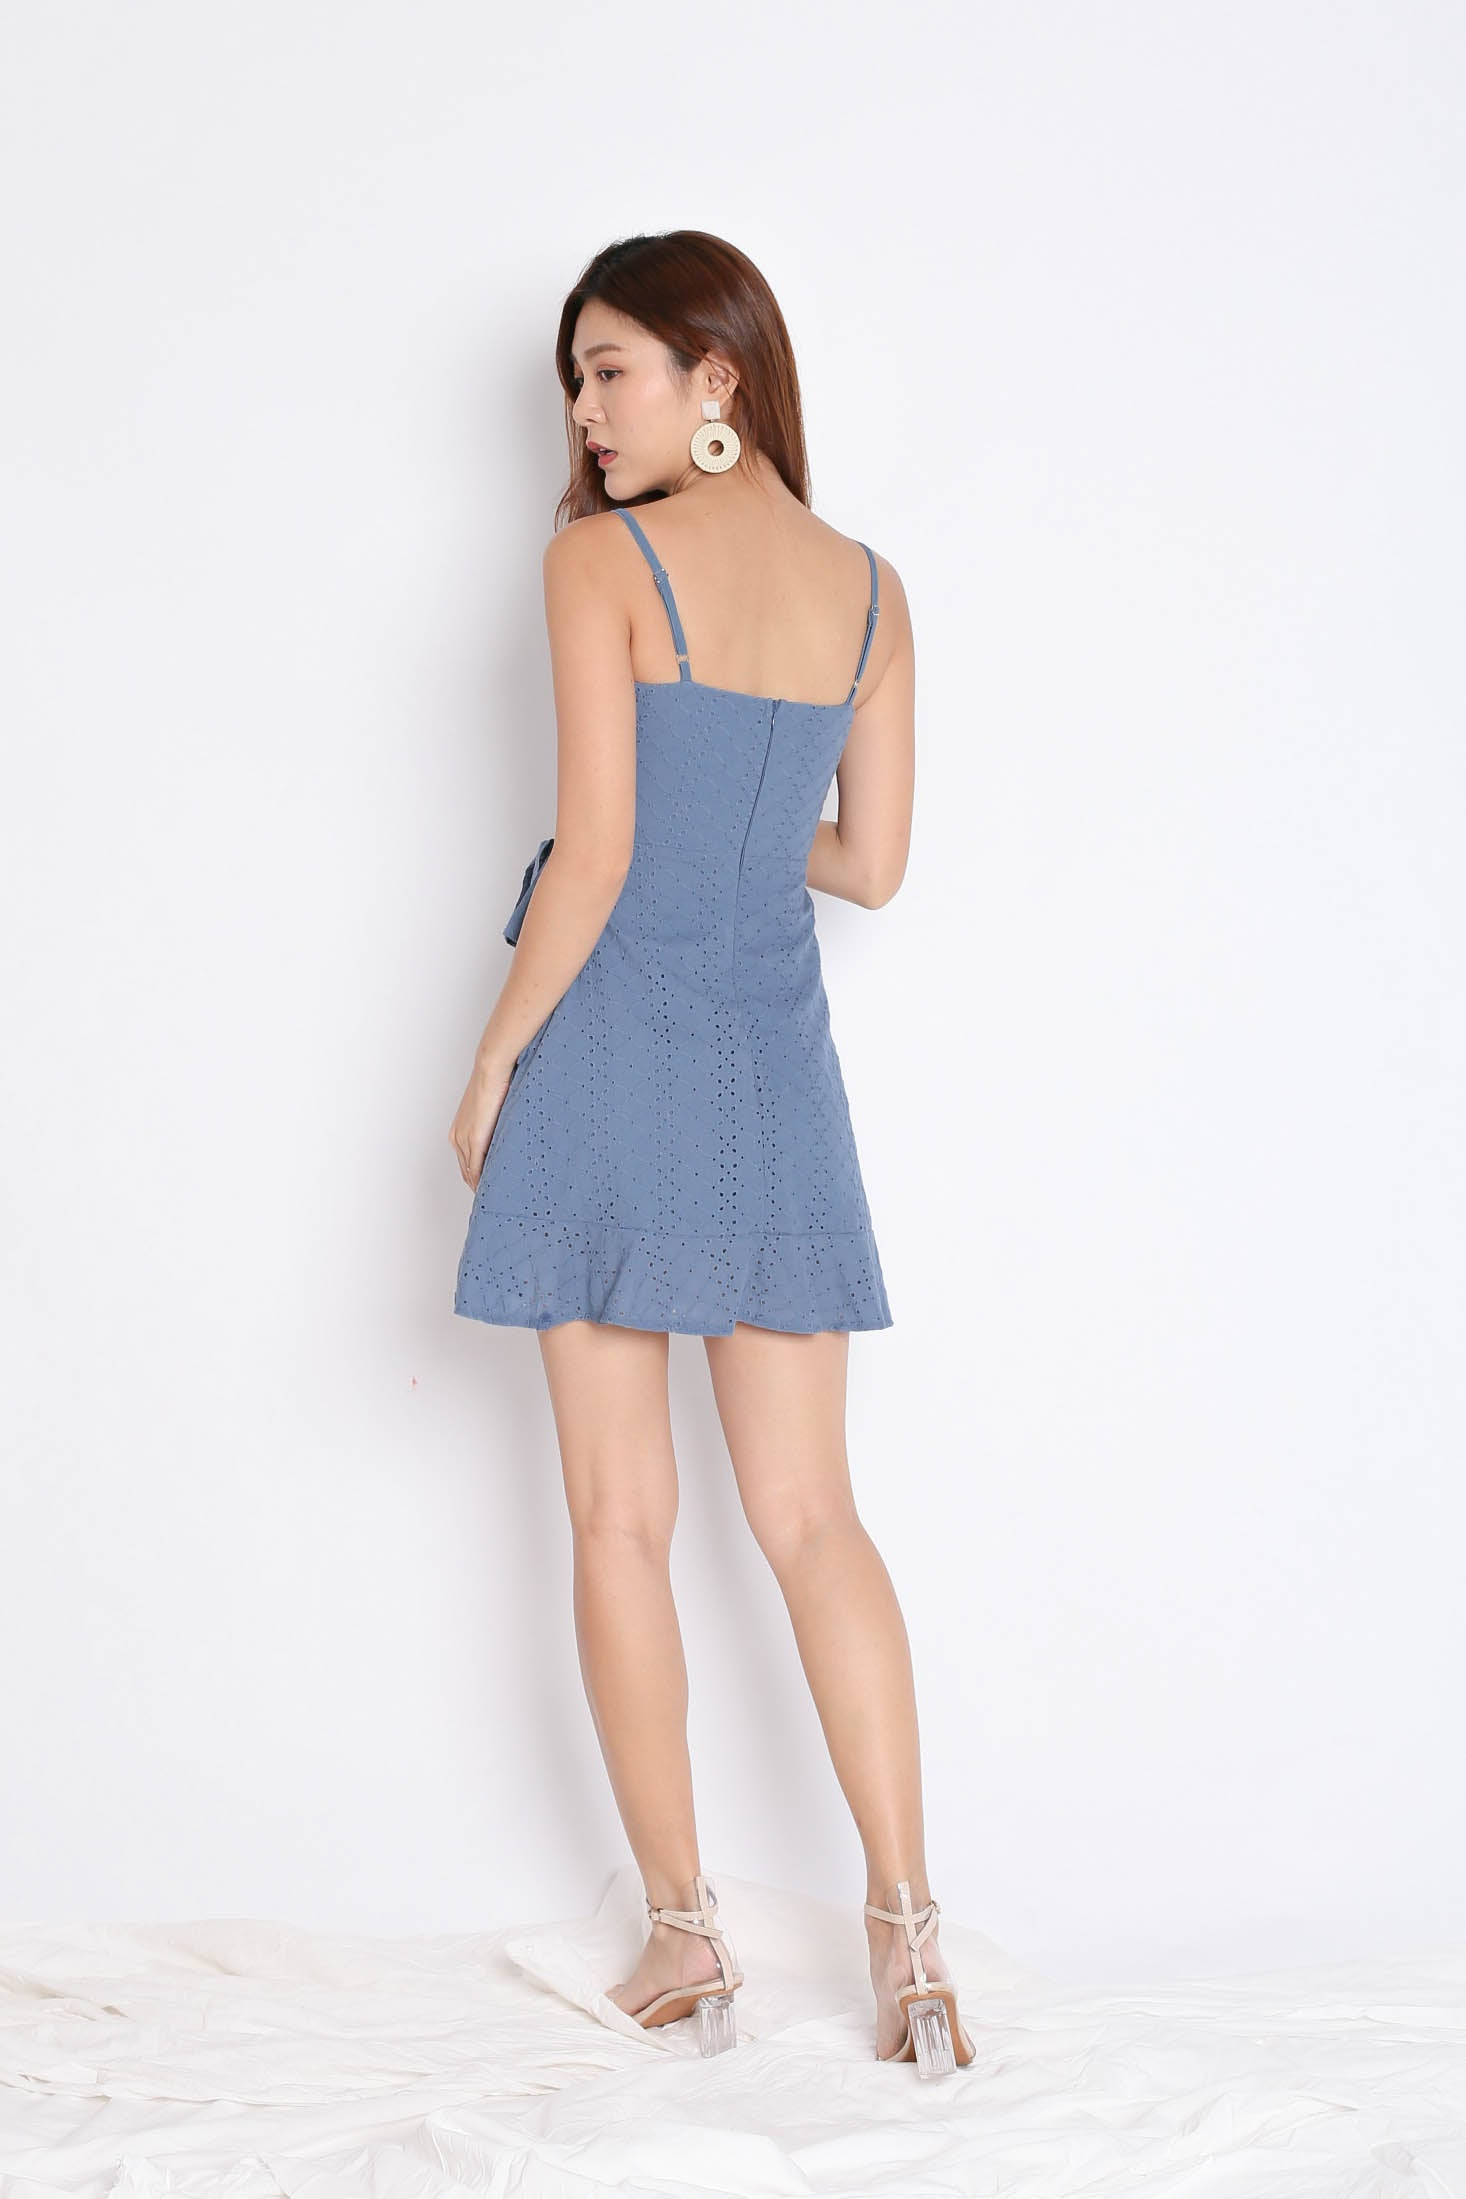 (PREMIUM) MAZEL EYELET WRAP DRESS IN STALE BLUE